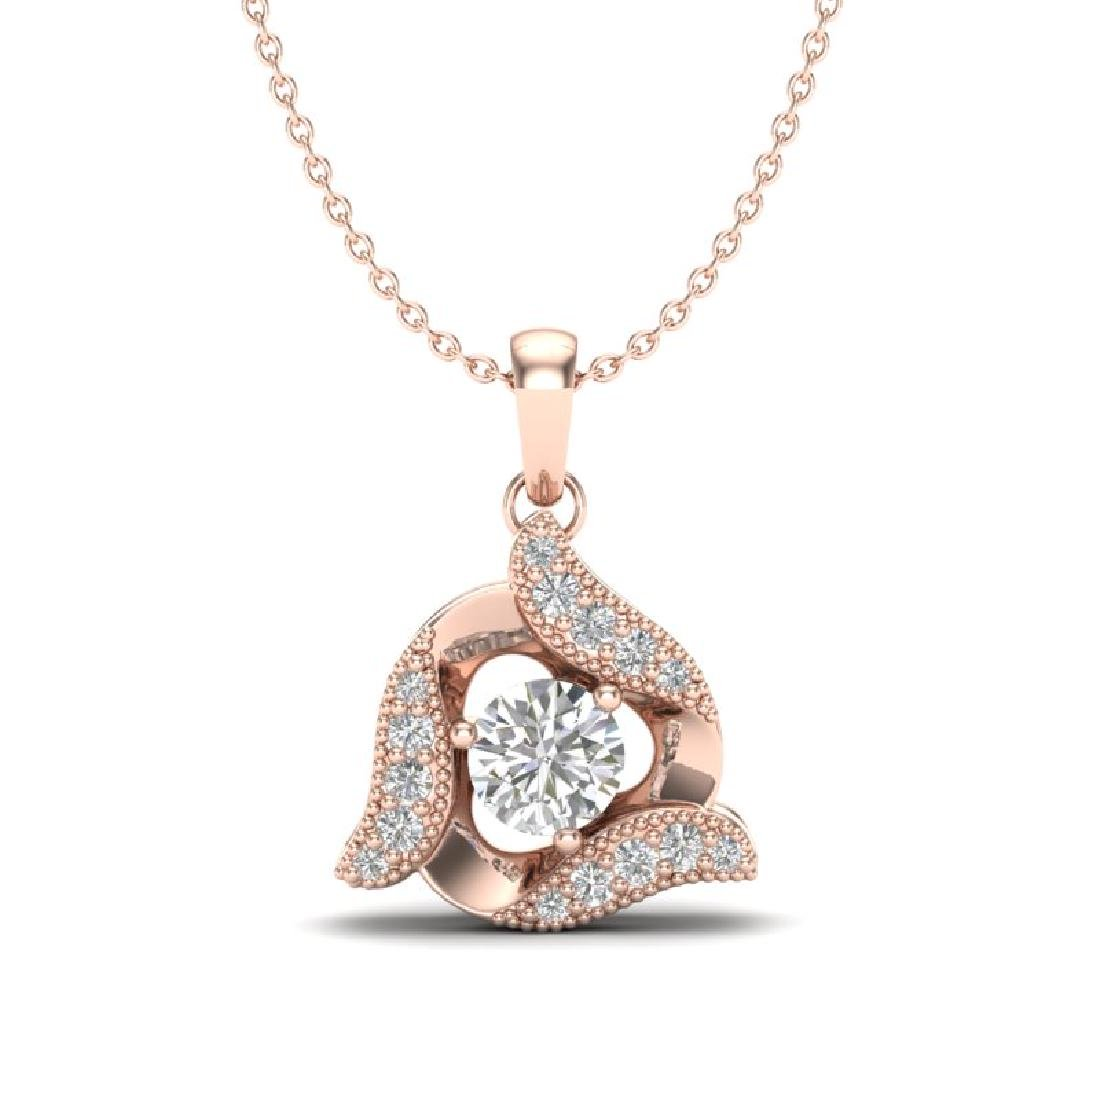 0.38 CTW Micro Pave VS/SI Diamond Halo Necklace 14K